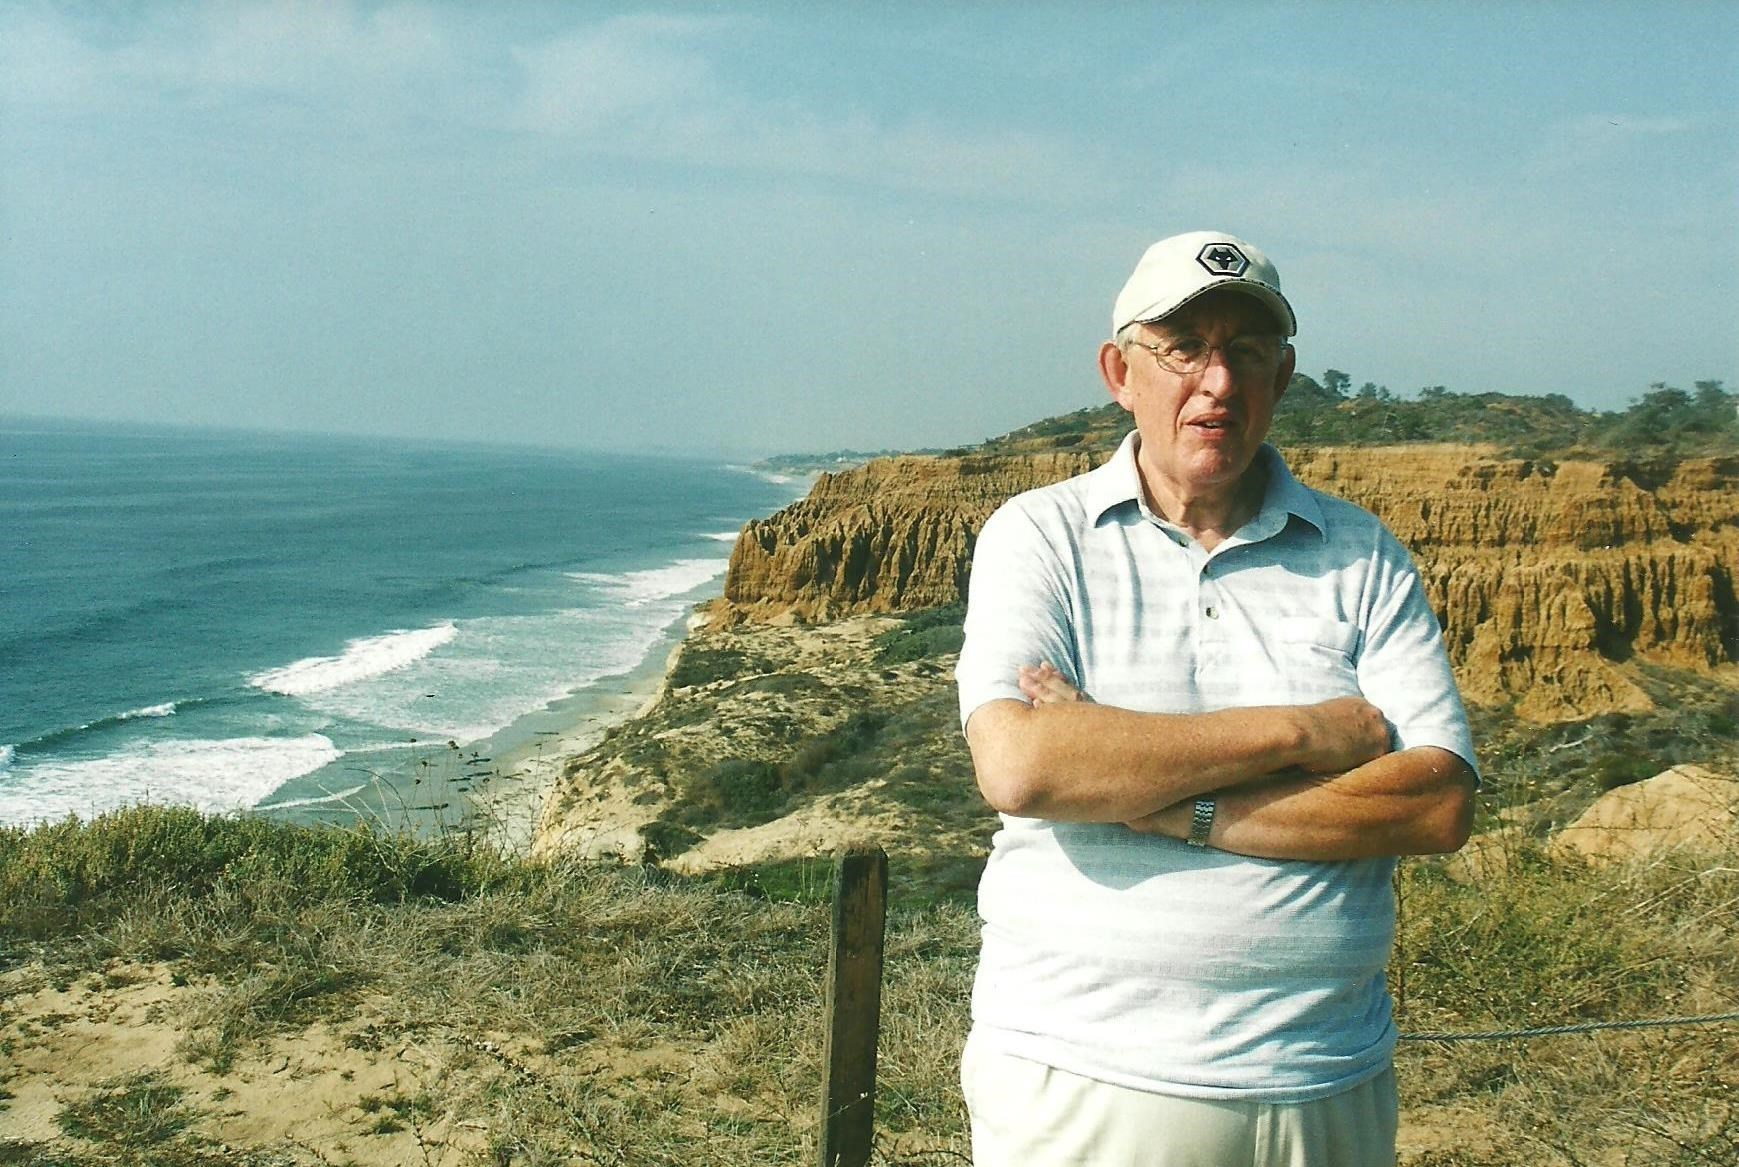 Tony at Torrey Pines in San Diego 2003